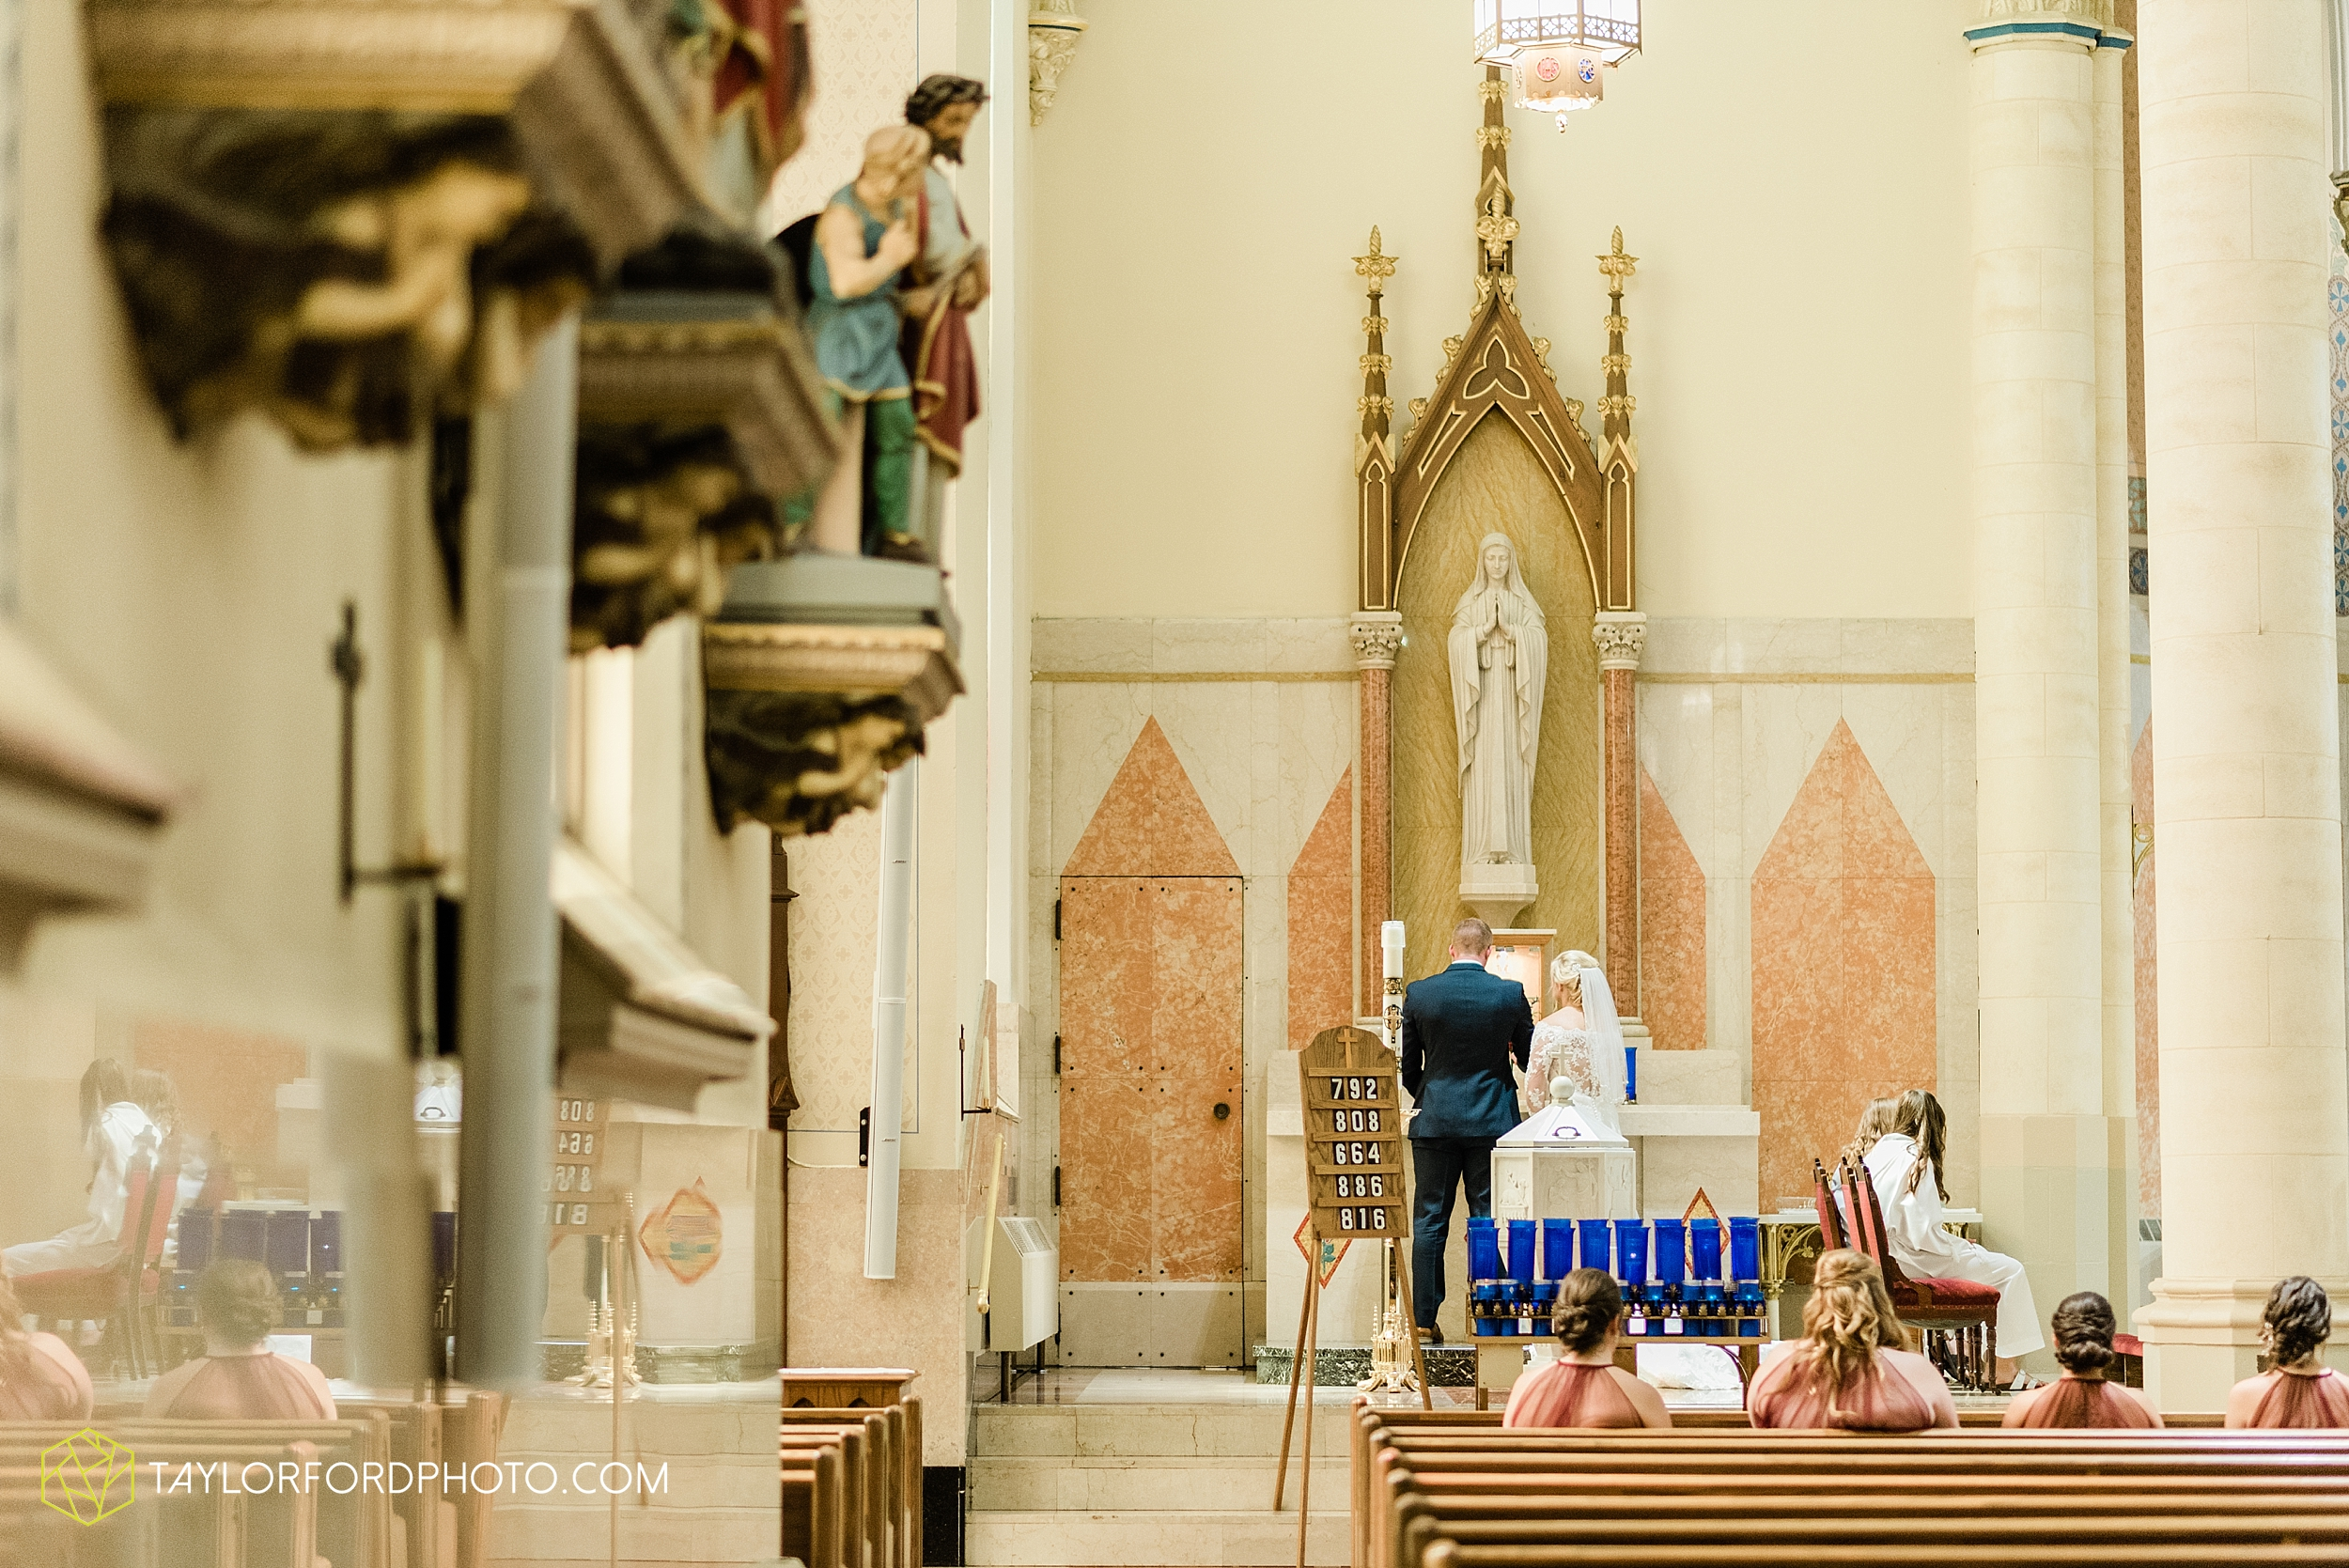 gayle-rayman-mike-steele-ottoville-ohio-wedding-immaculate-conception-parish-center-wedding-sycamore-lake-winery-wannamachers-photographer-taylor-ford-photography_0399.jpg